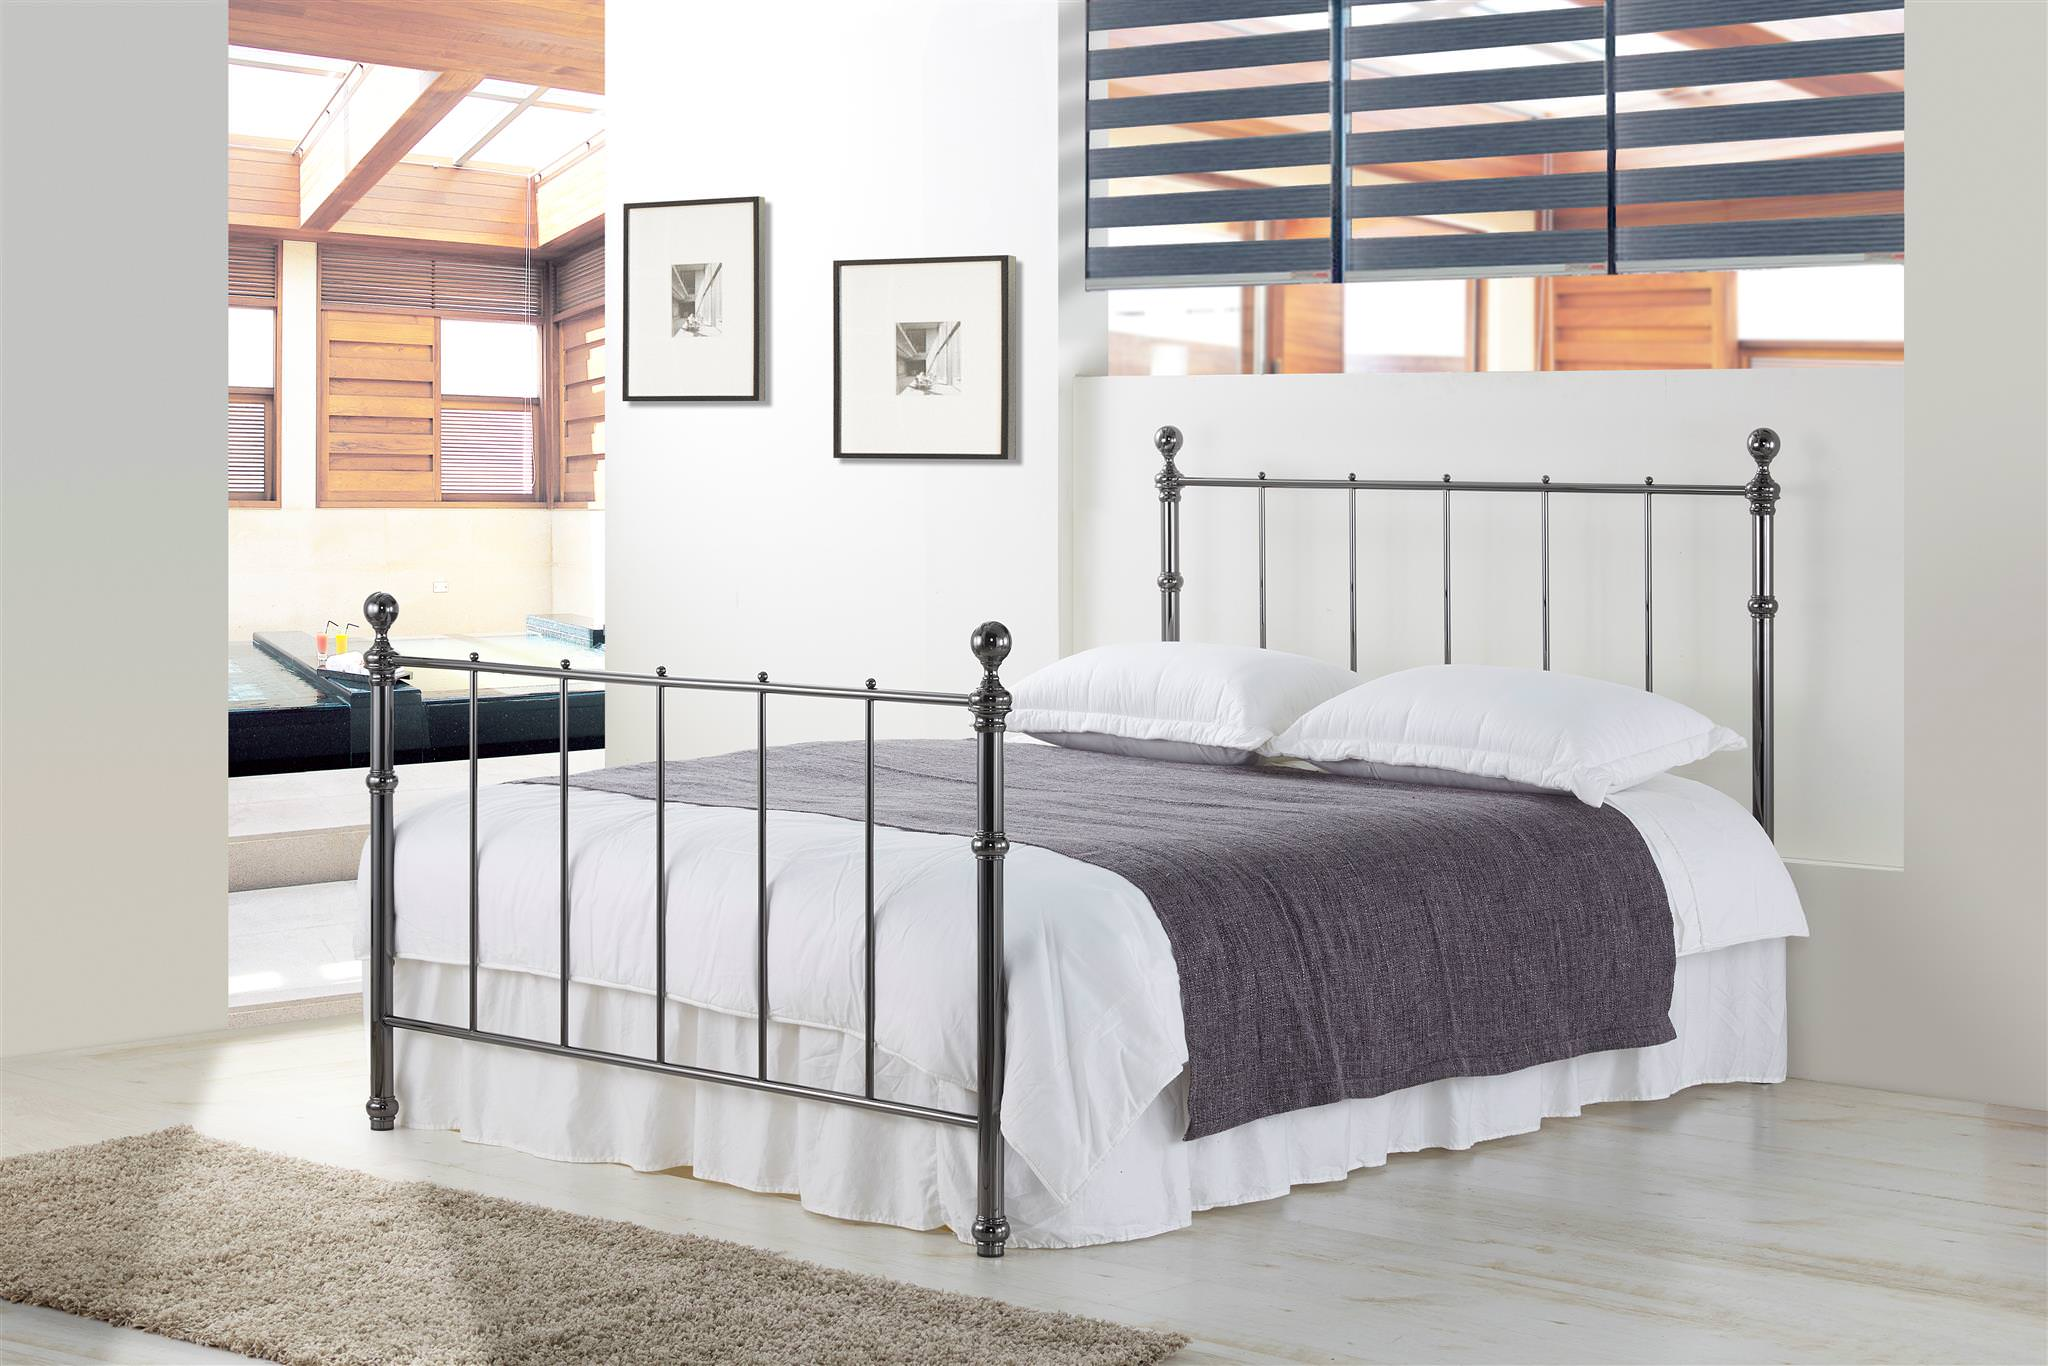 4ft6 Bed Frame Details About Maisie Black Nickel Metal Bed Frame Classic Style 4ft6 Double 5ft King Size